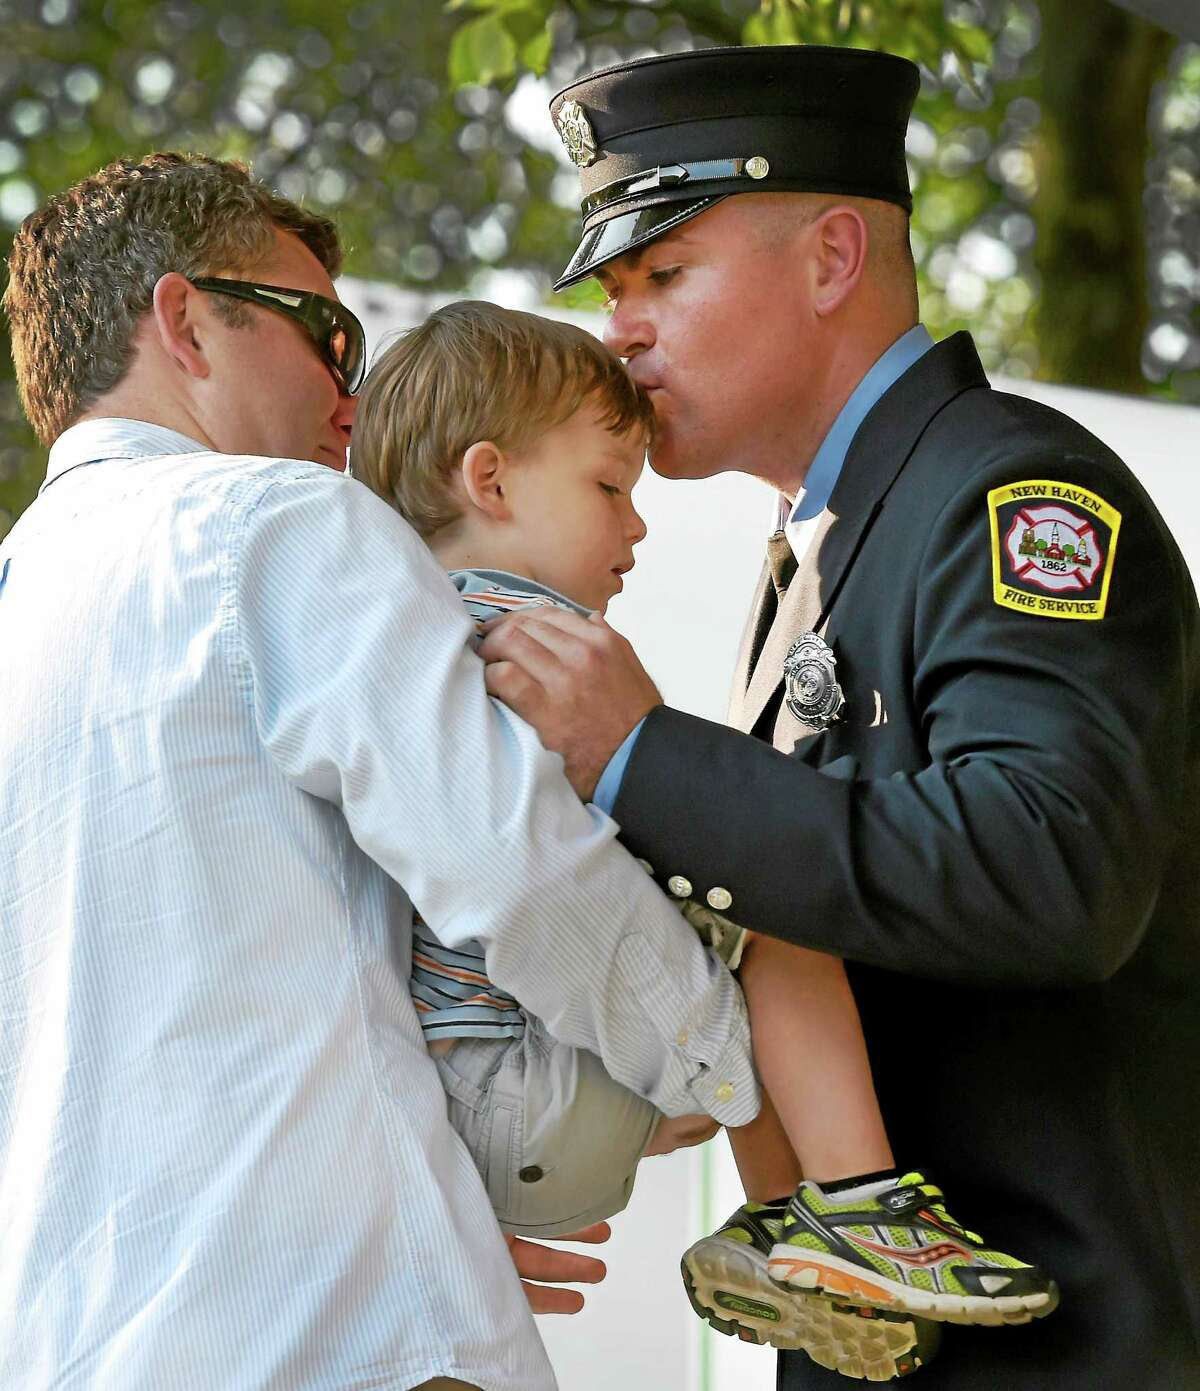 New Haven probationary firefighter Patrick Sheiffele kisses his nephew Charles Scheiffele, 3, of North Branford after he and his brother Stephen Scheiffele pinned on his badge during a graduation ceremony for the New Haven Fire Department's 58th recruit class on the New Haven Green Monday evening, July 13, 2015 for 18 new probationary firefighters.